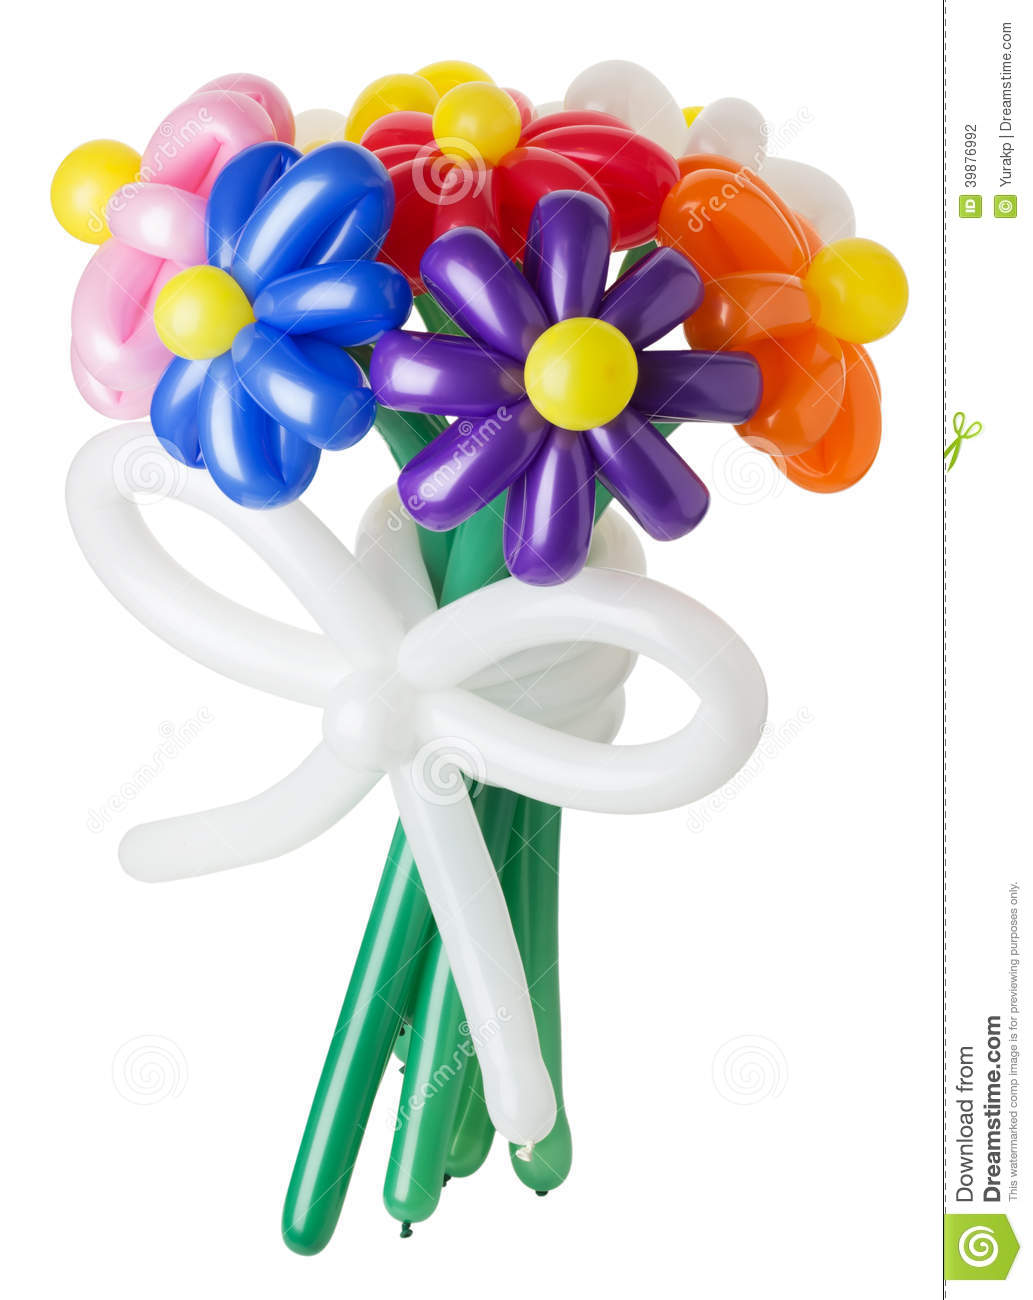 Bouquet With Colorful Balloon Flowers On White Background Stock.